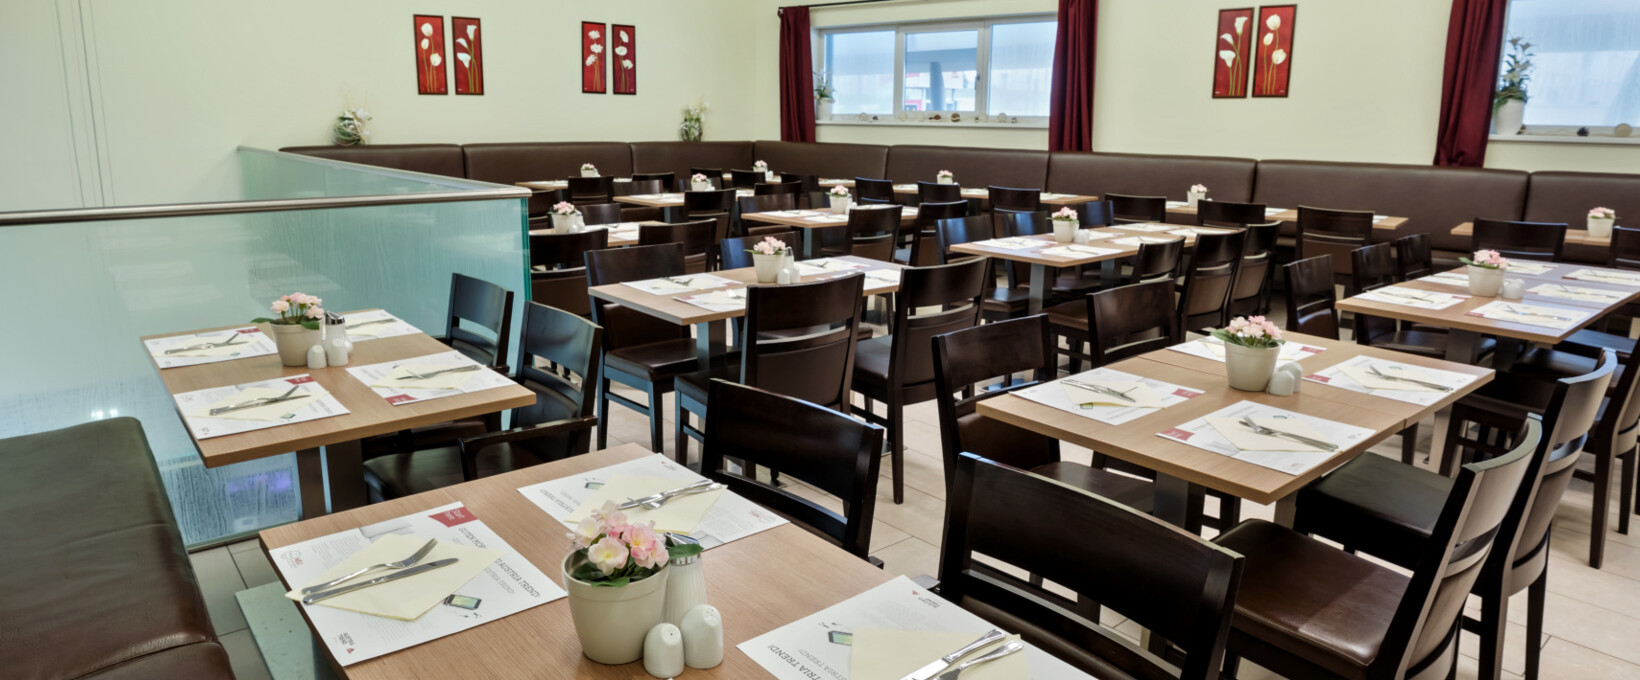 Breakfast restaurant with laid table | Hotel Salzburg Mitte